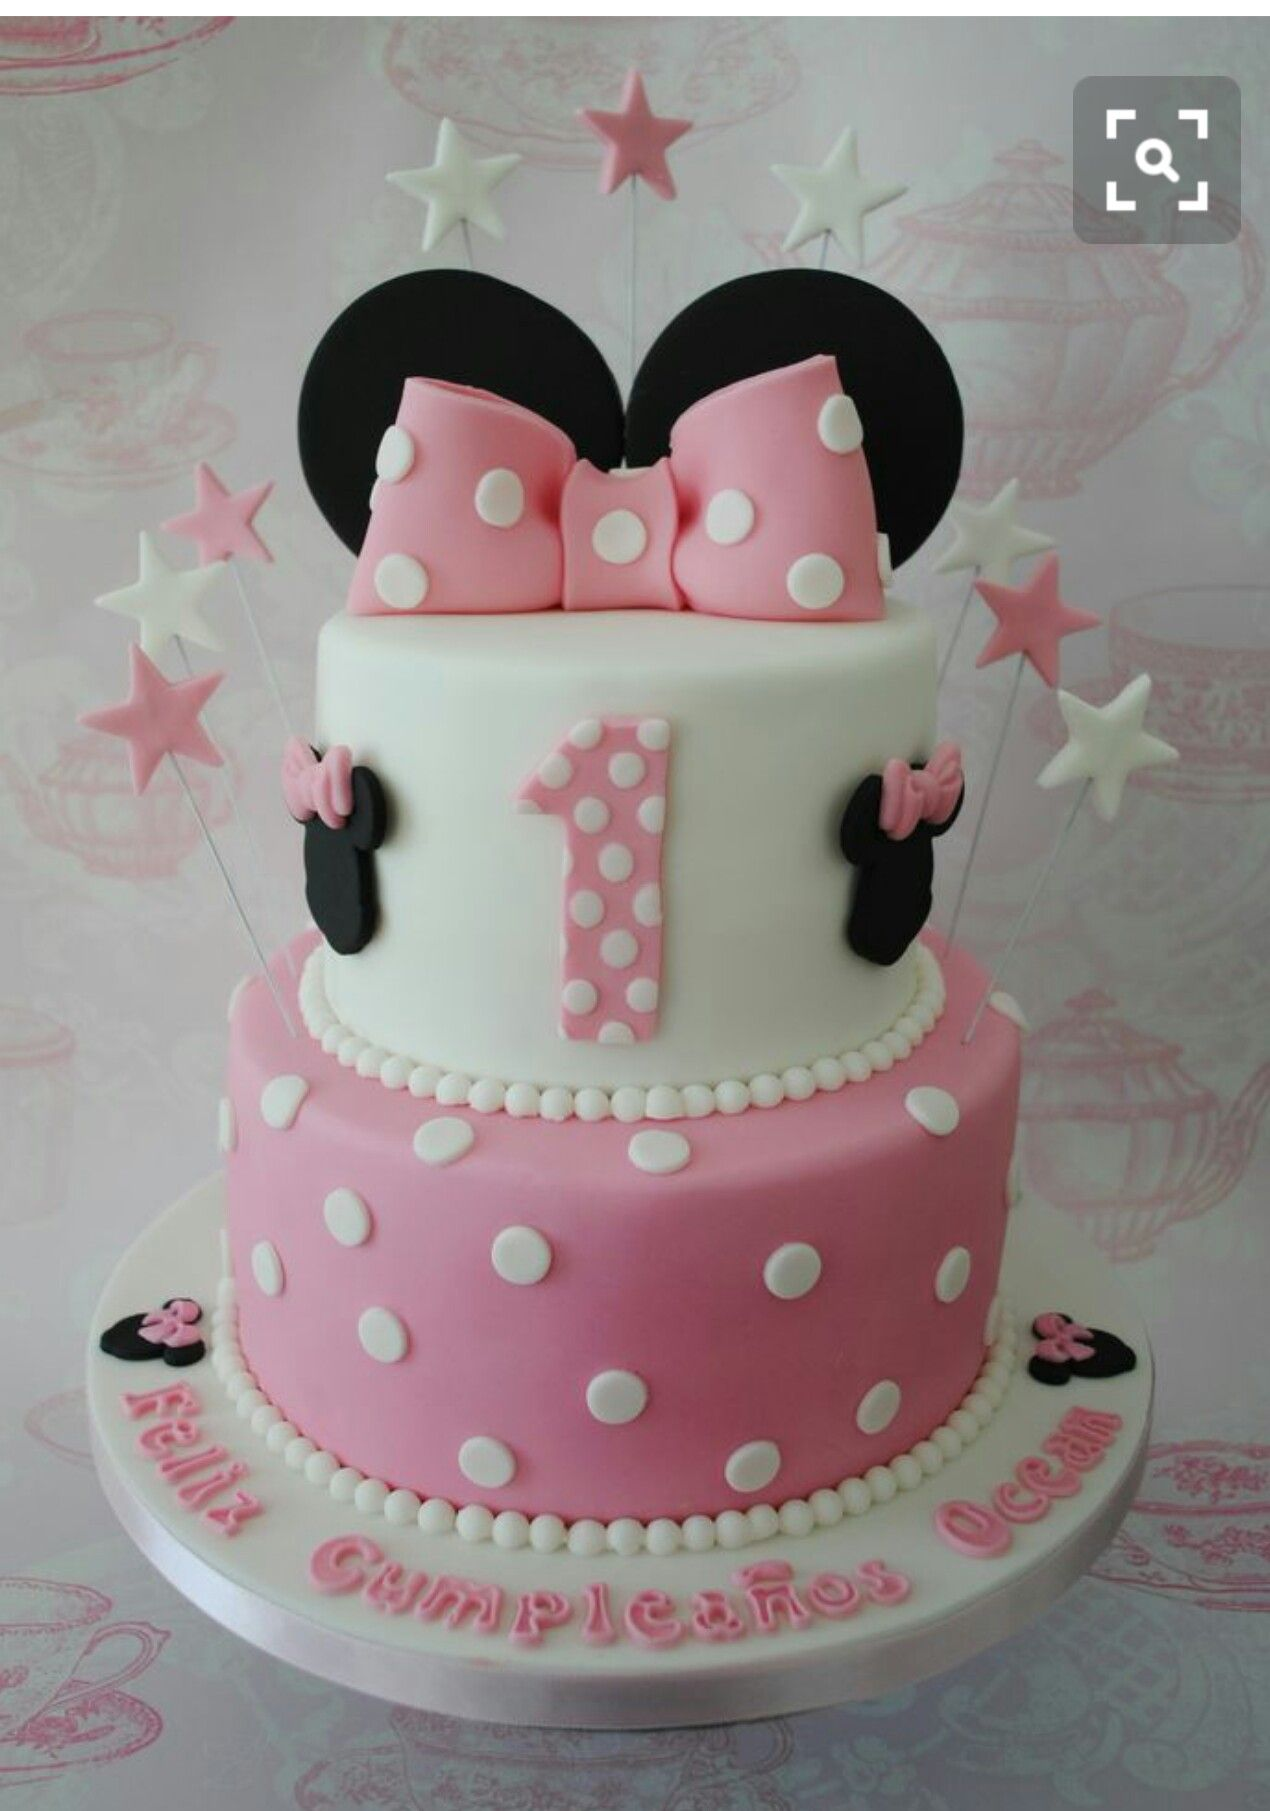 Pink White Minnie Mouse Cake Minnie Mouse Birthday Cakes Minnie Cake Minnie Mouse Cake